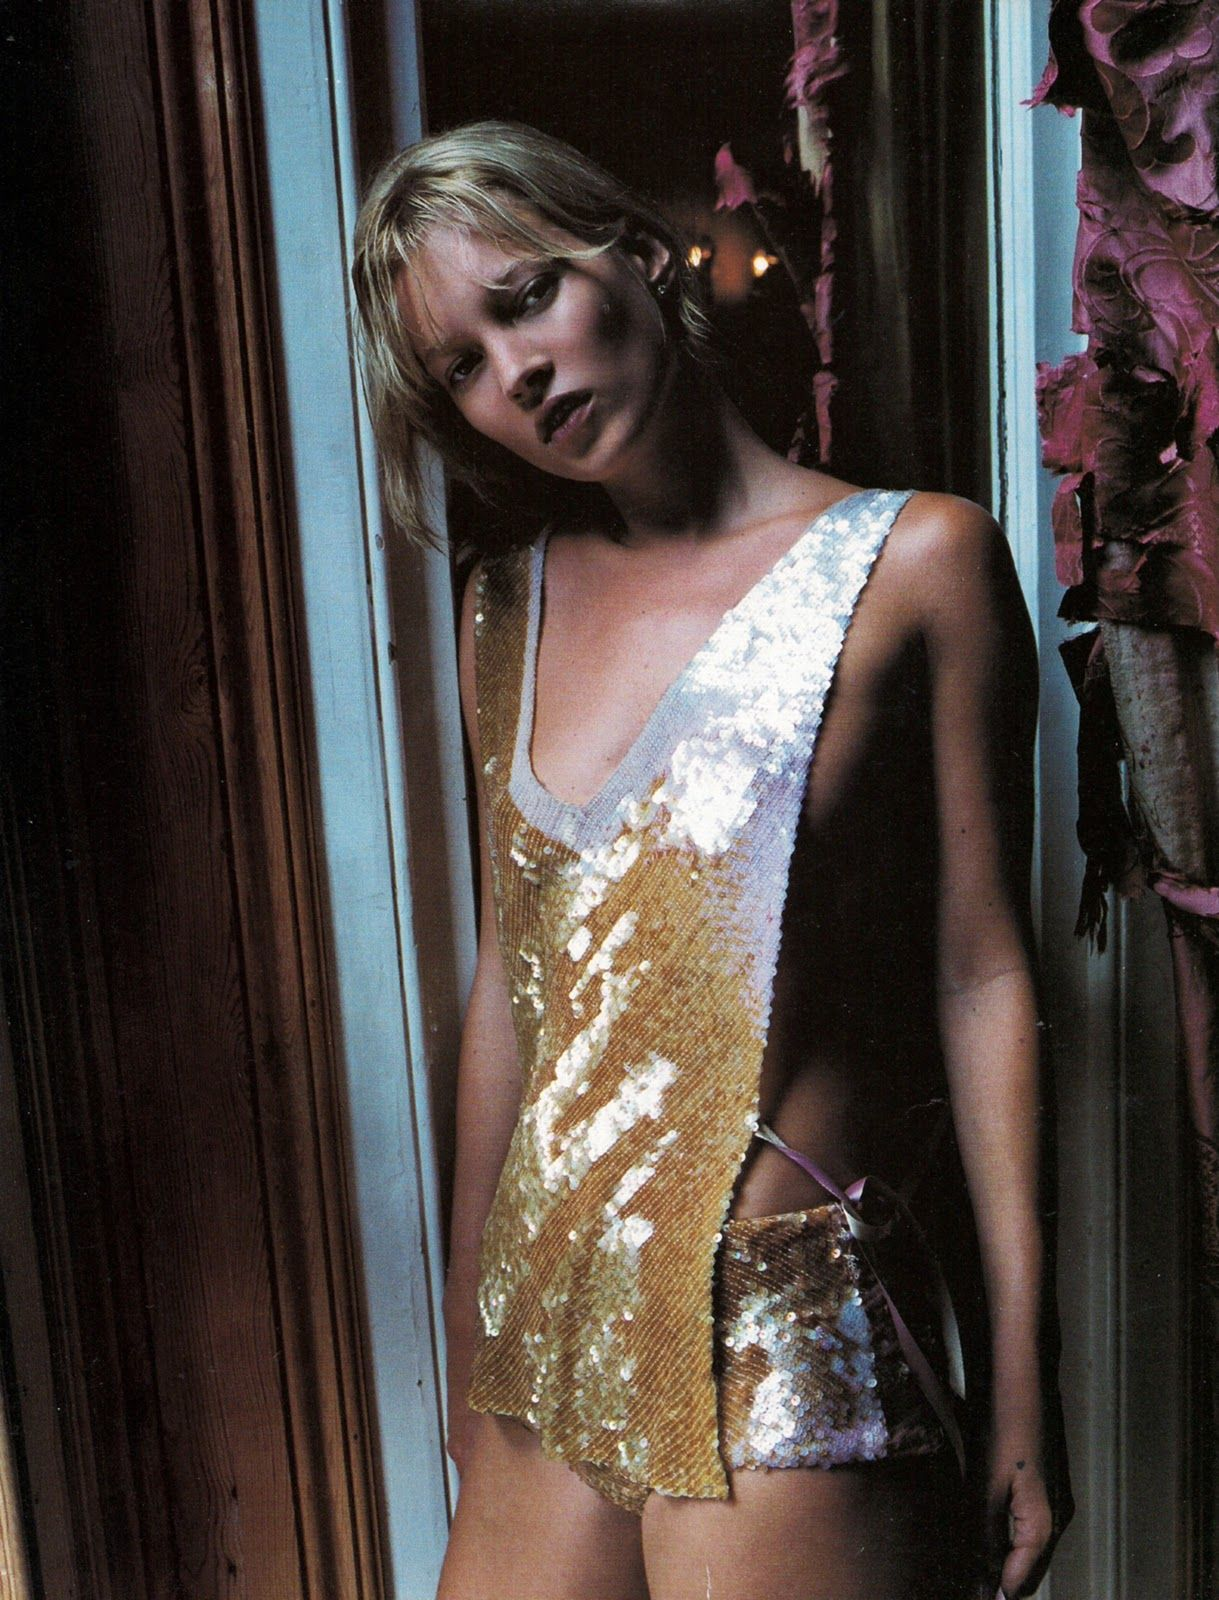 kate moss by corinne day for vogue uk december 2000 http://www.nomad-chic.com/search/index.html?term=gold